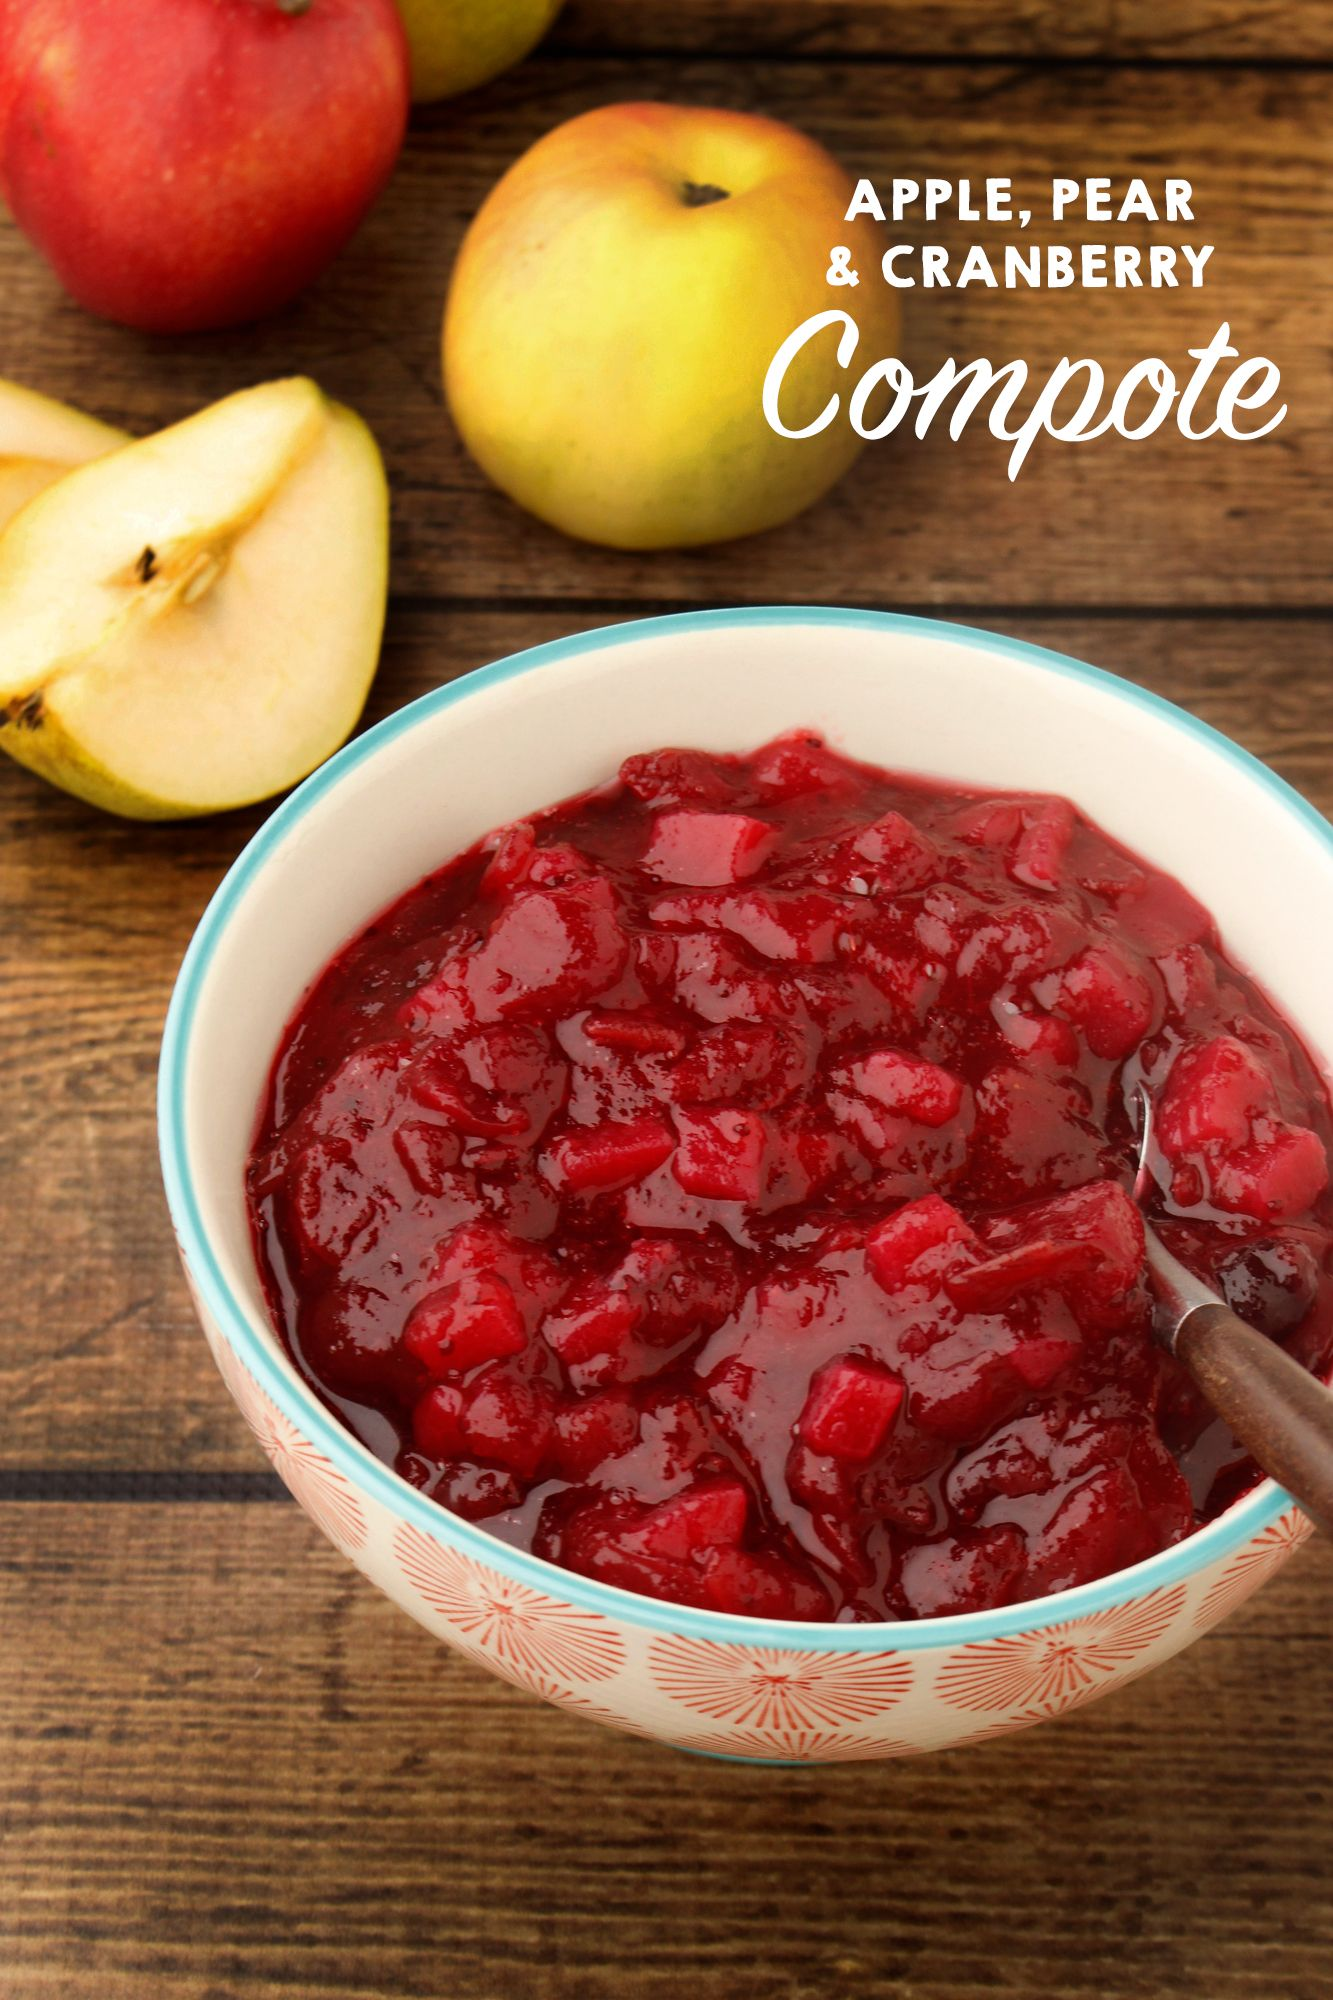 This sweet and tart compote is perfect to replace that